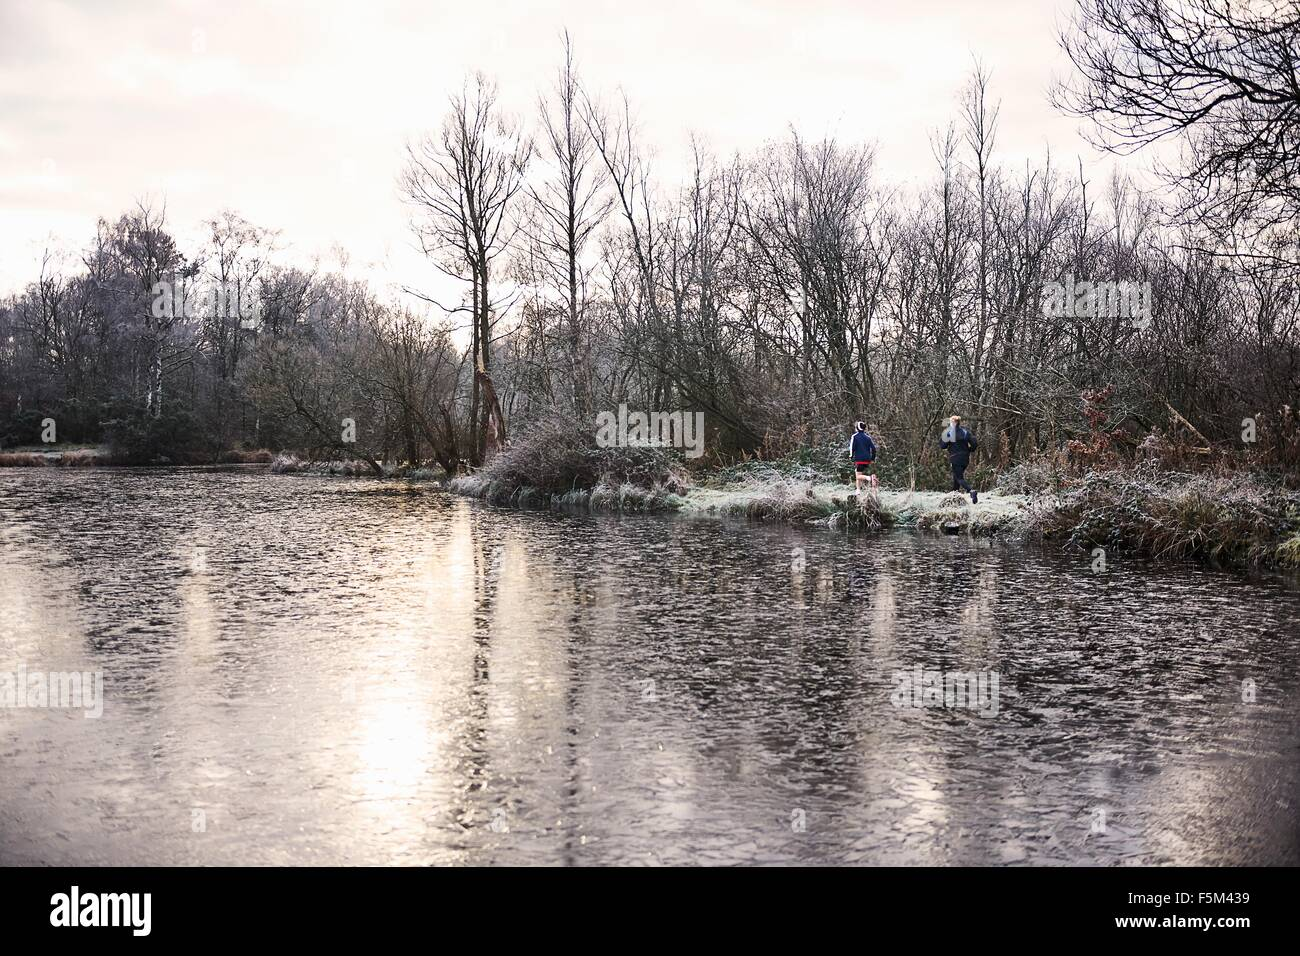 View across icy lake of mother and son running together Stock Photo